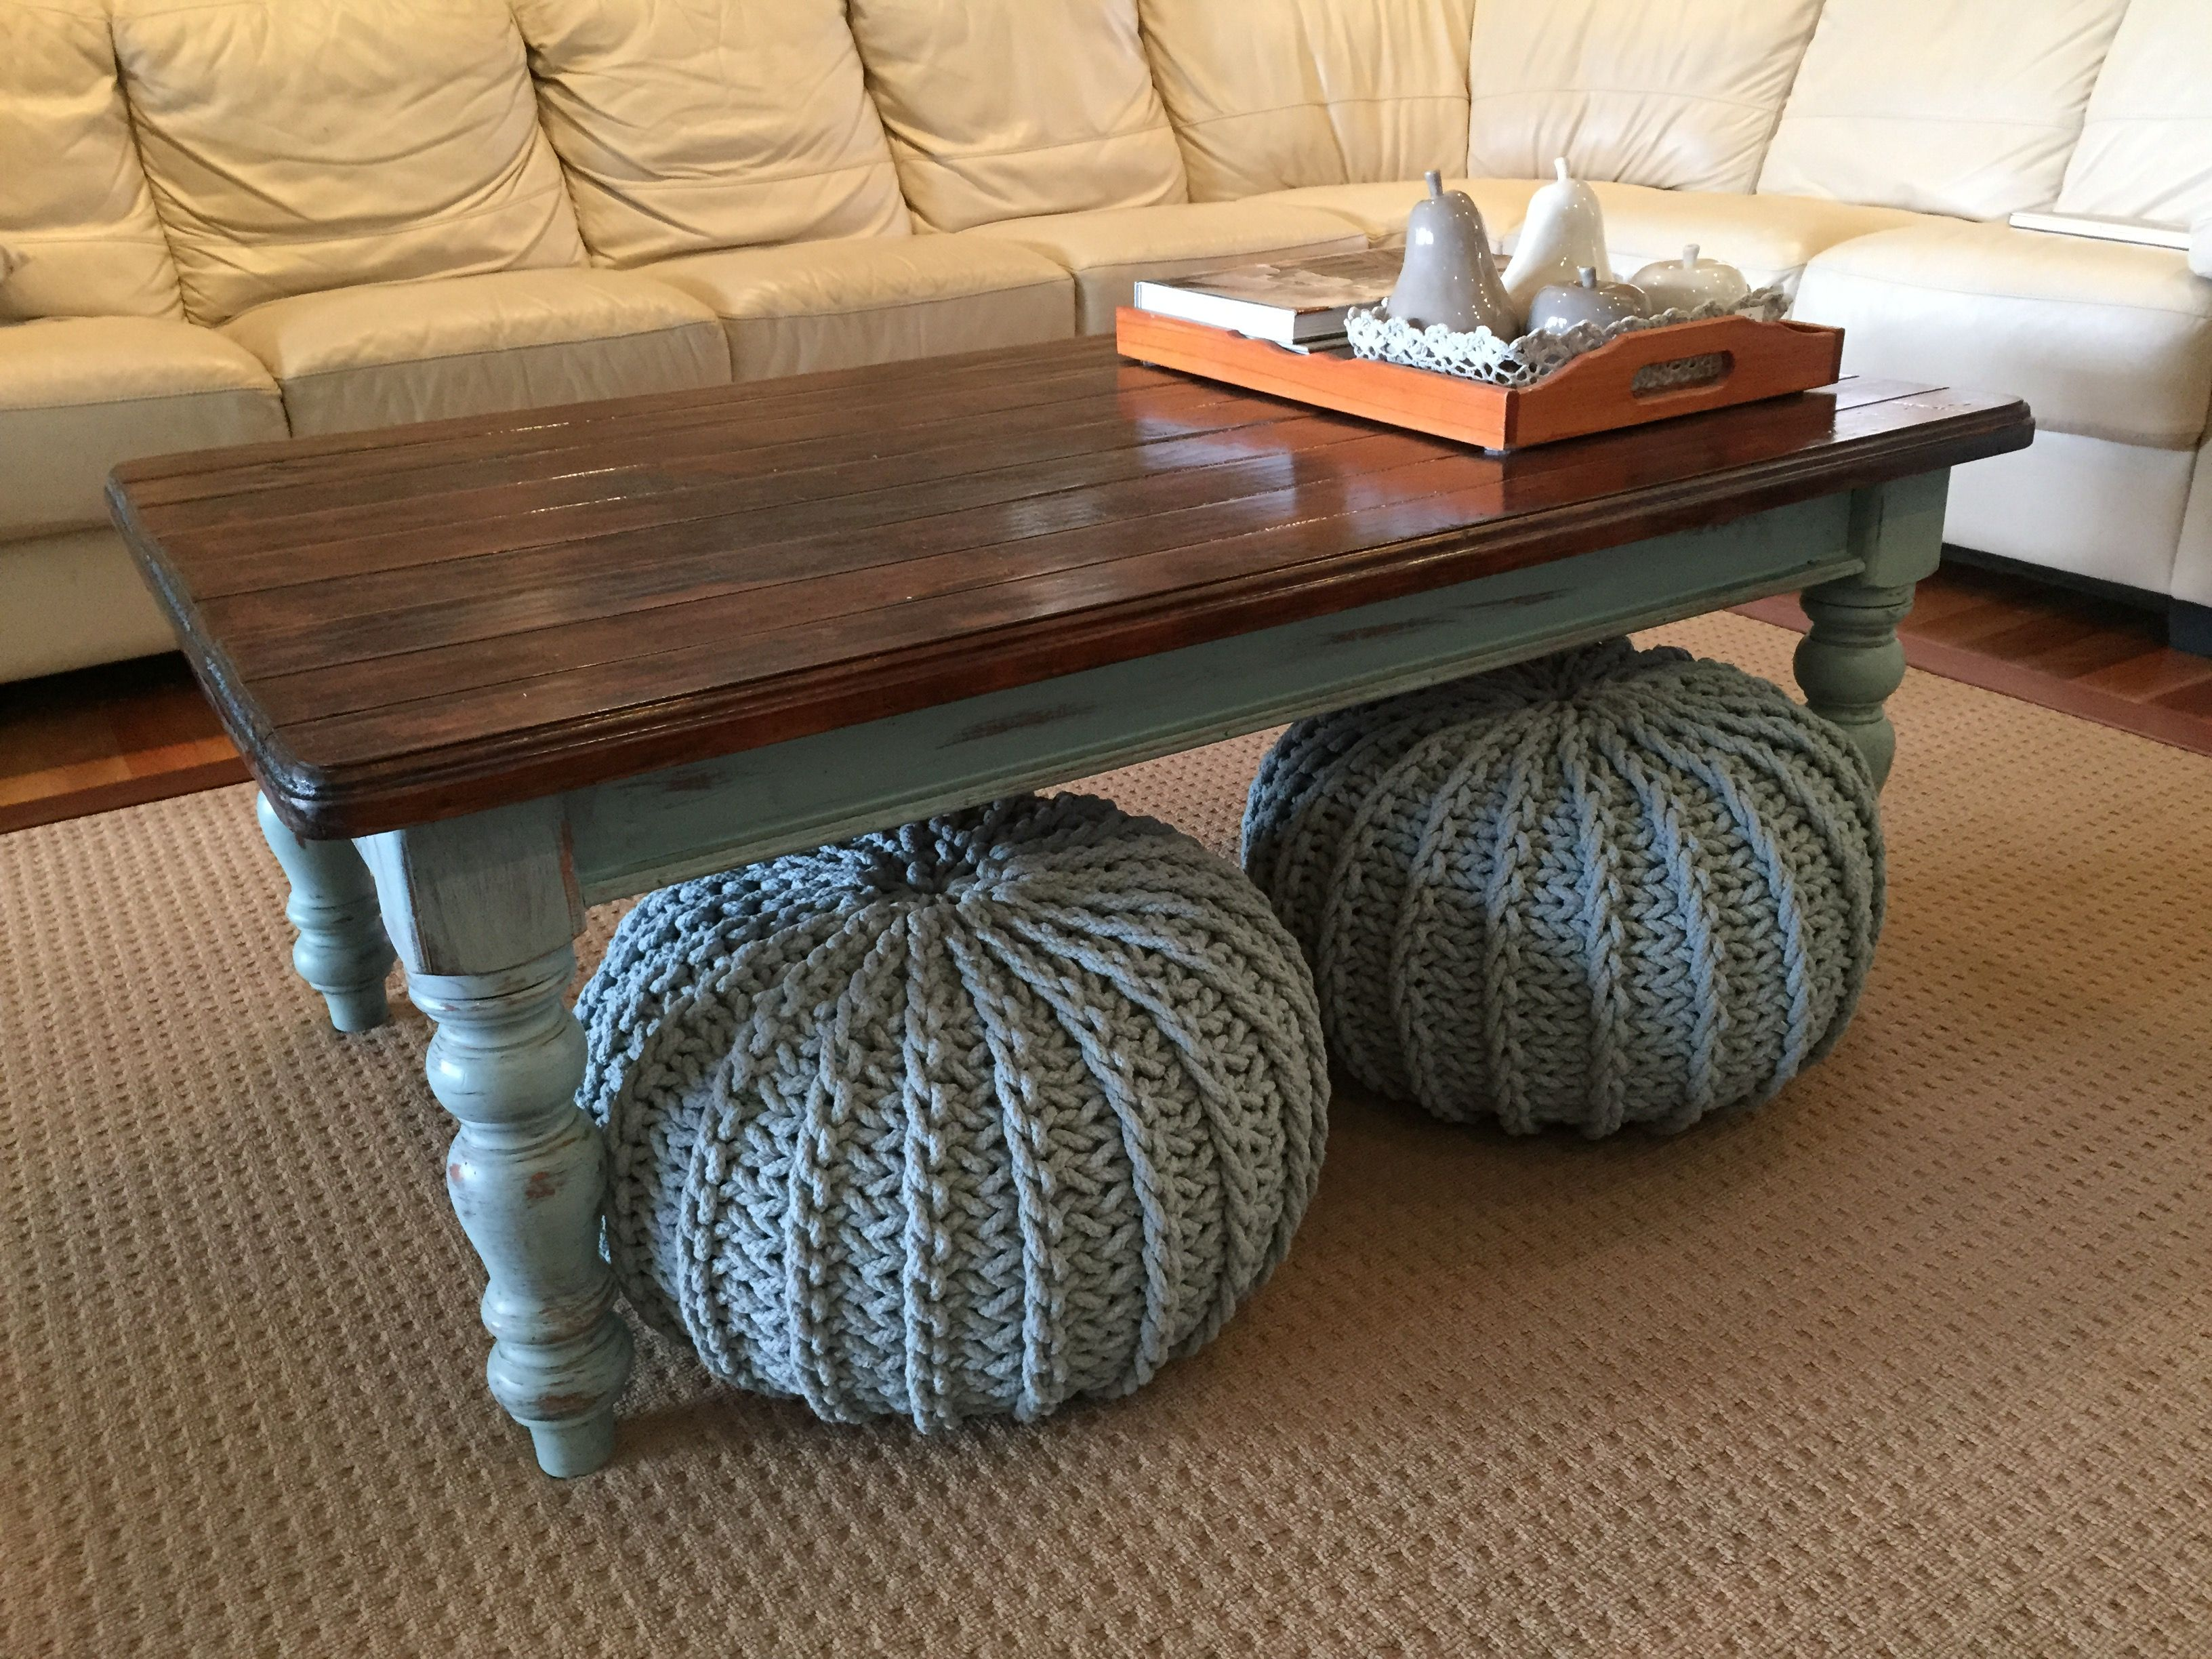 Country farmhouse style coffee table legs painted duck egg blue